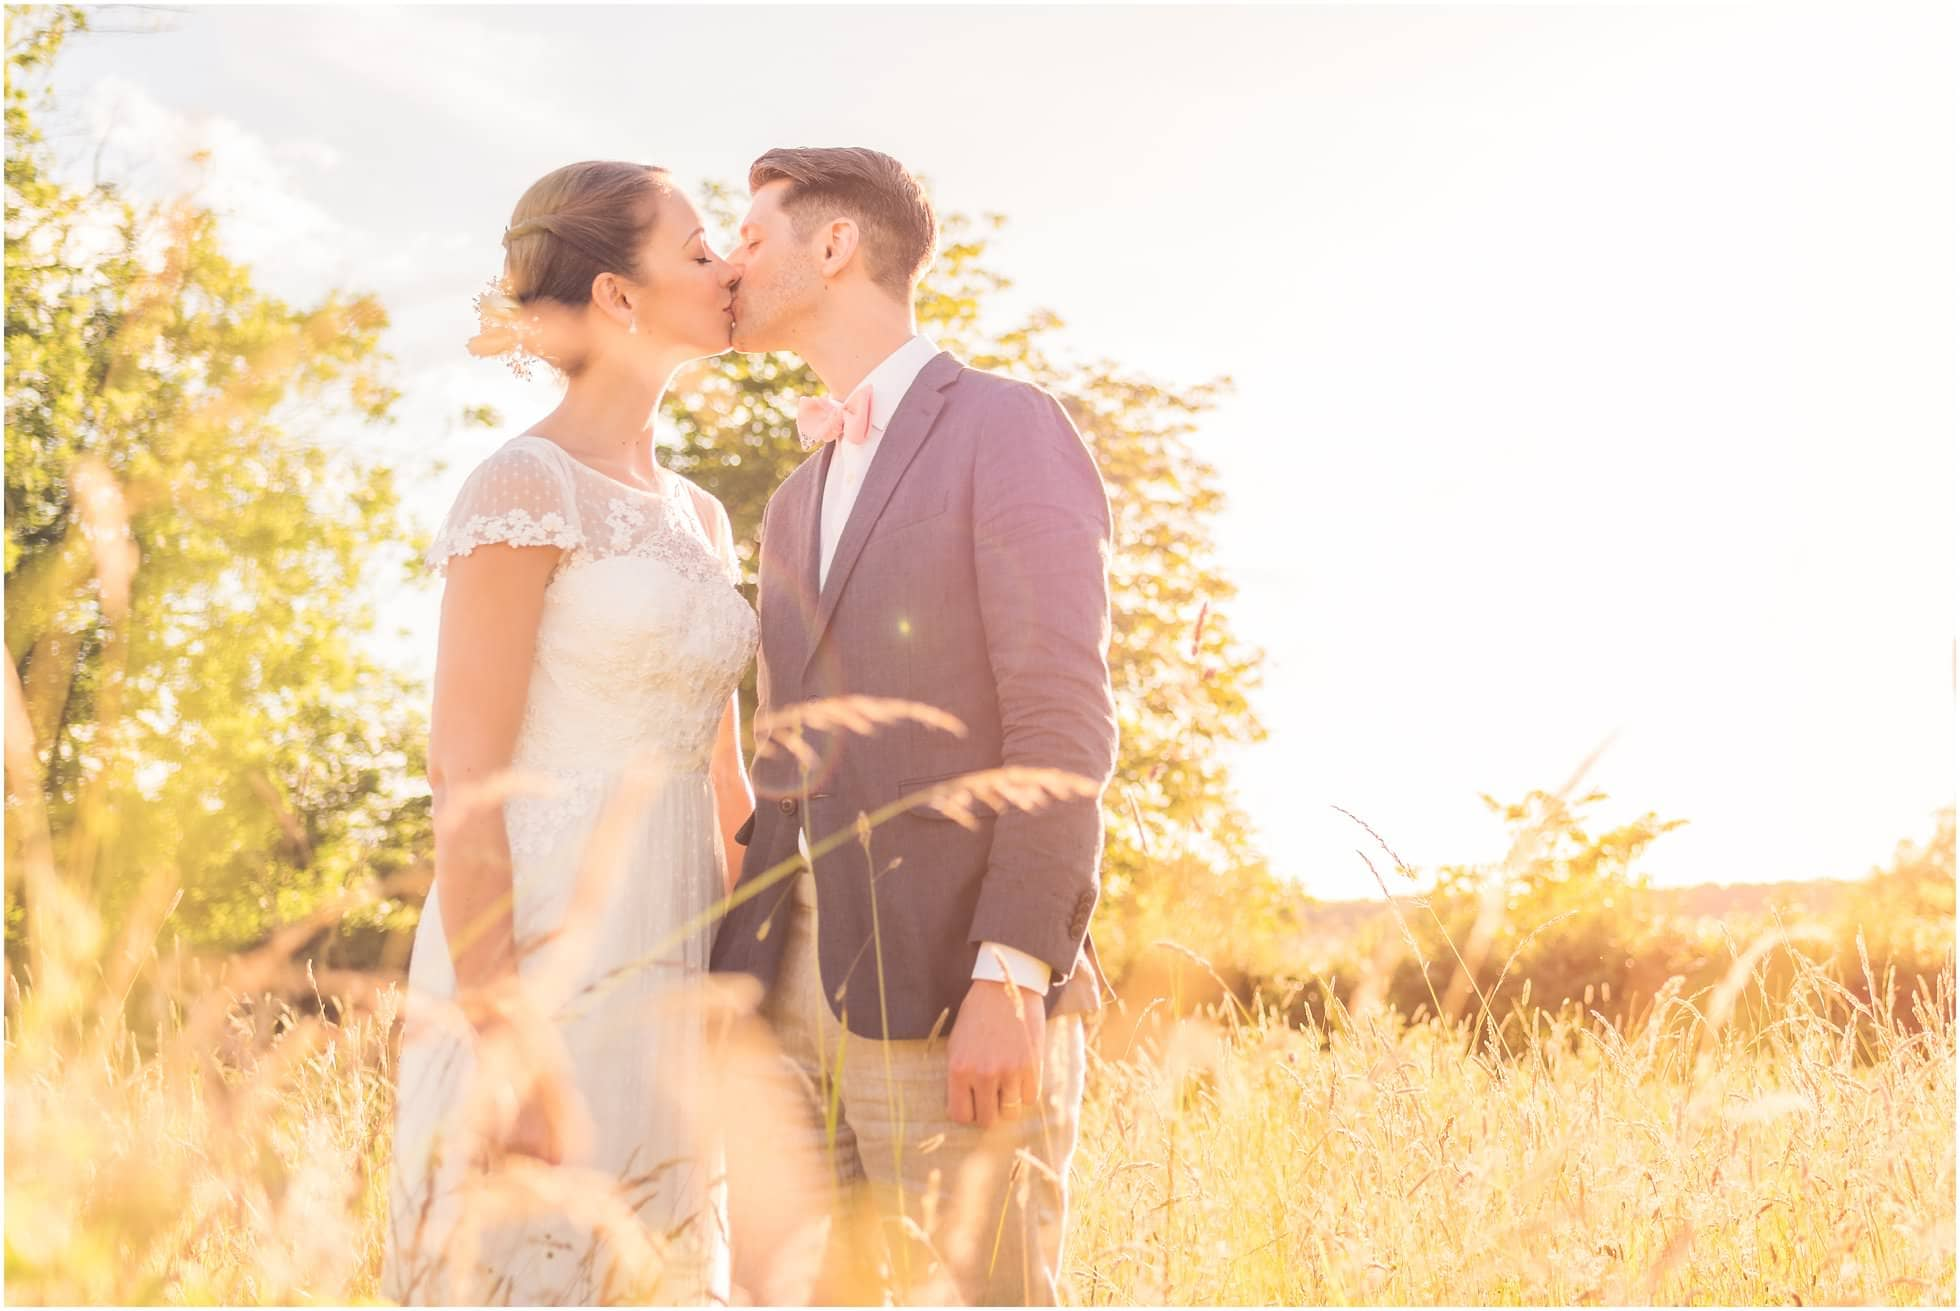 Bride and Groom kiss - Suffolk Wedding Photography golden hour moment